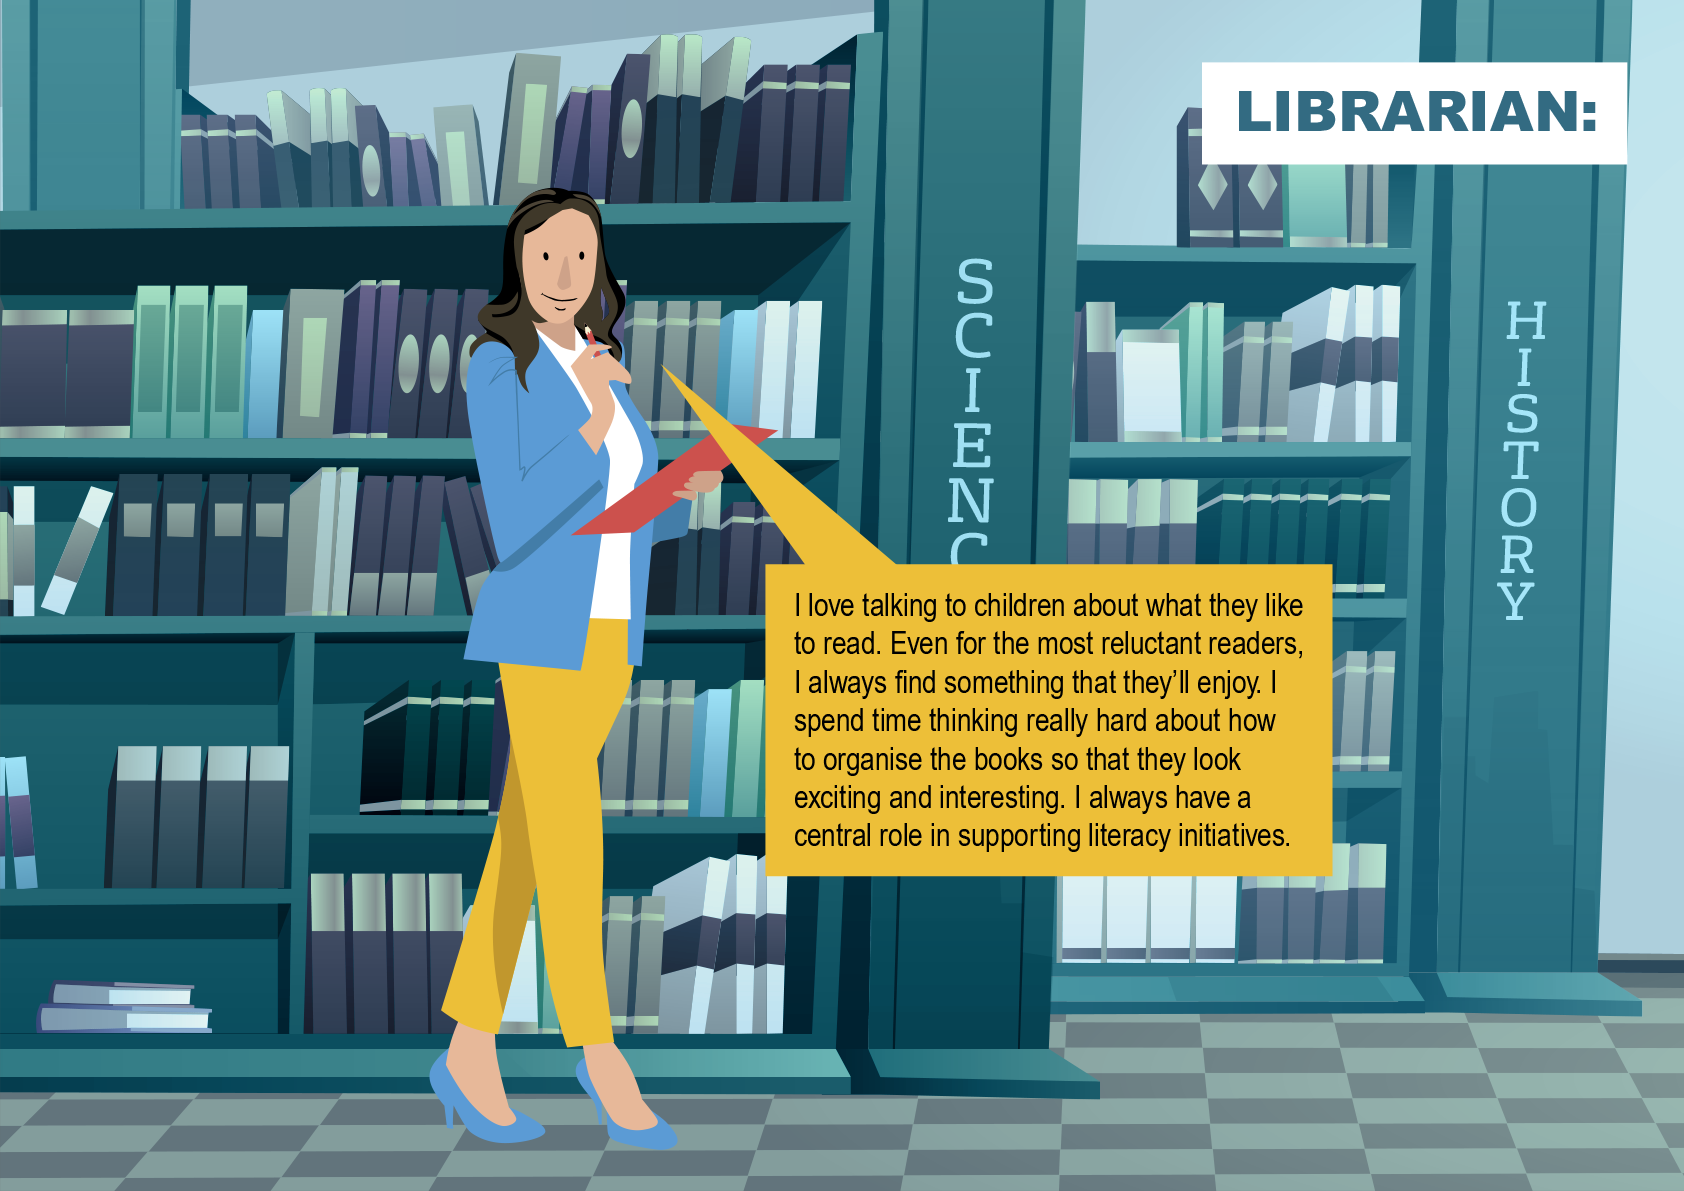 The librarian is standing in front of some bookshelves